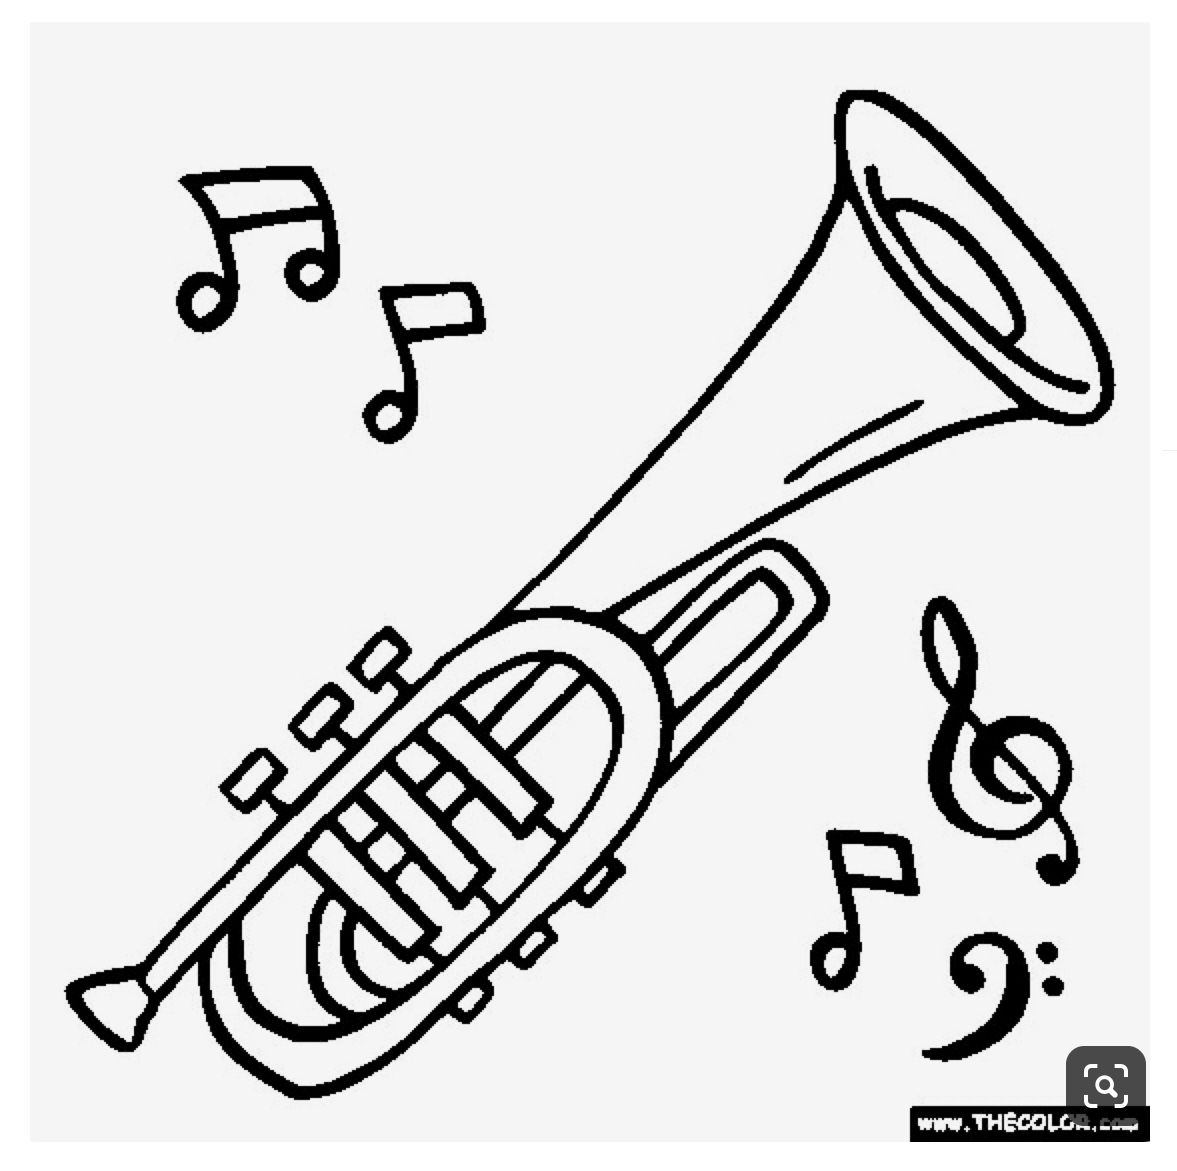 coloring musical instruments drawing 6 best musical instruments coloring pages for kids musical instruments drawing coloring